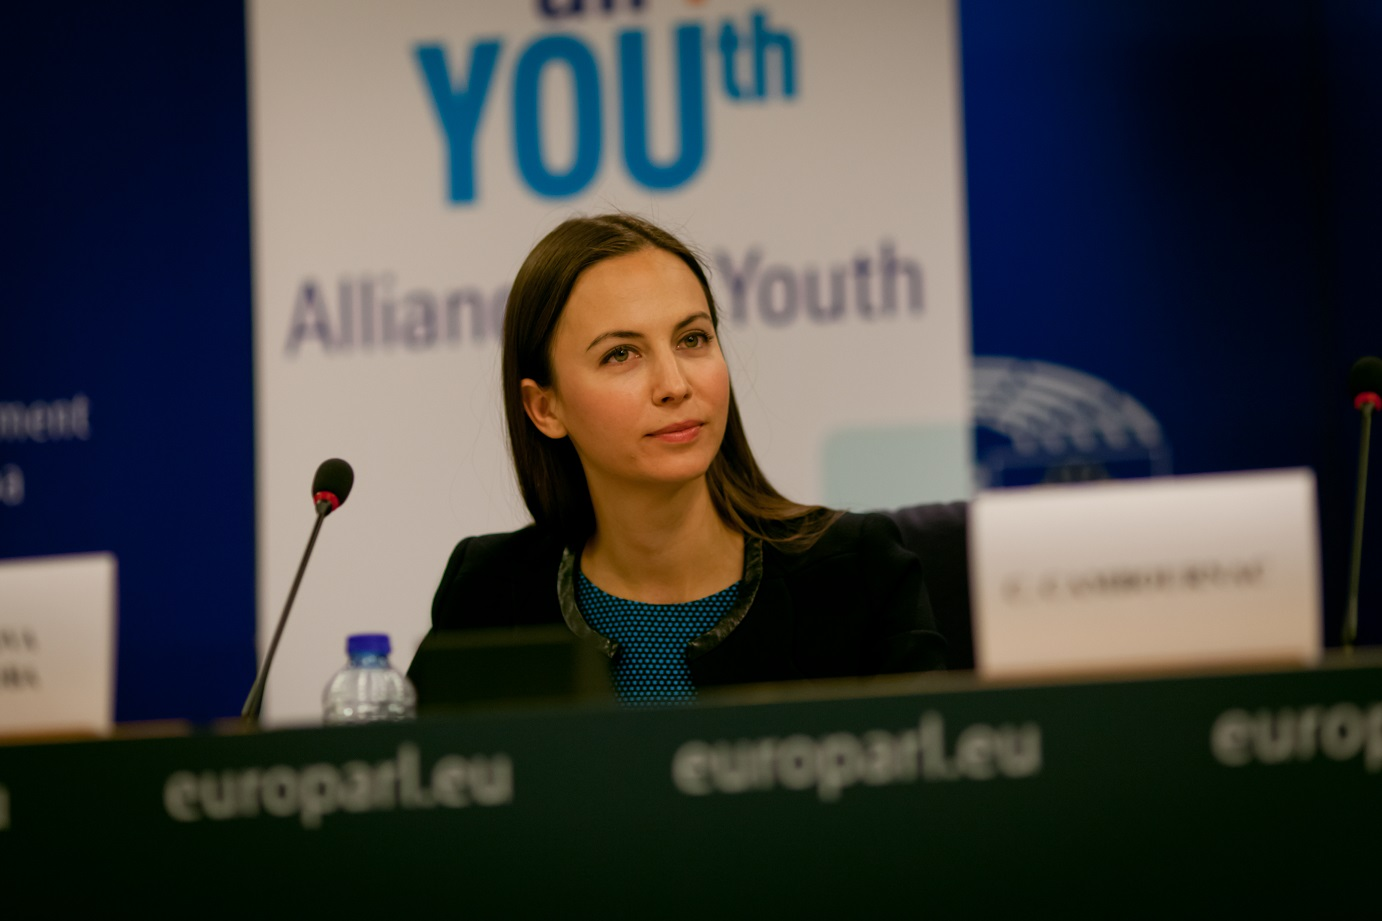 alliance-for-youth-debate-10